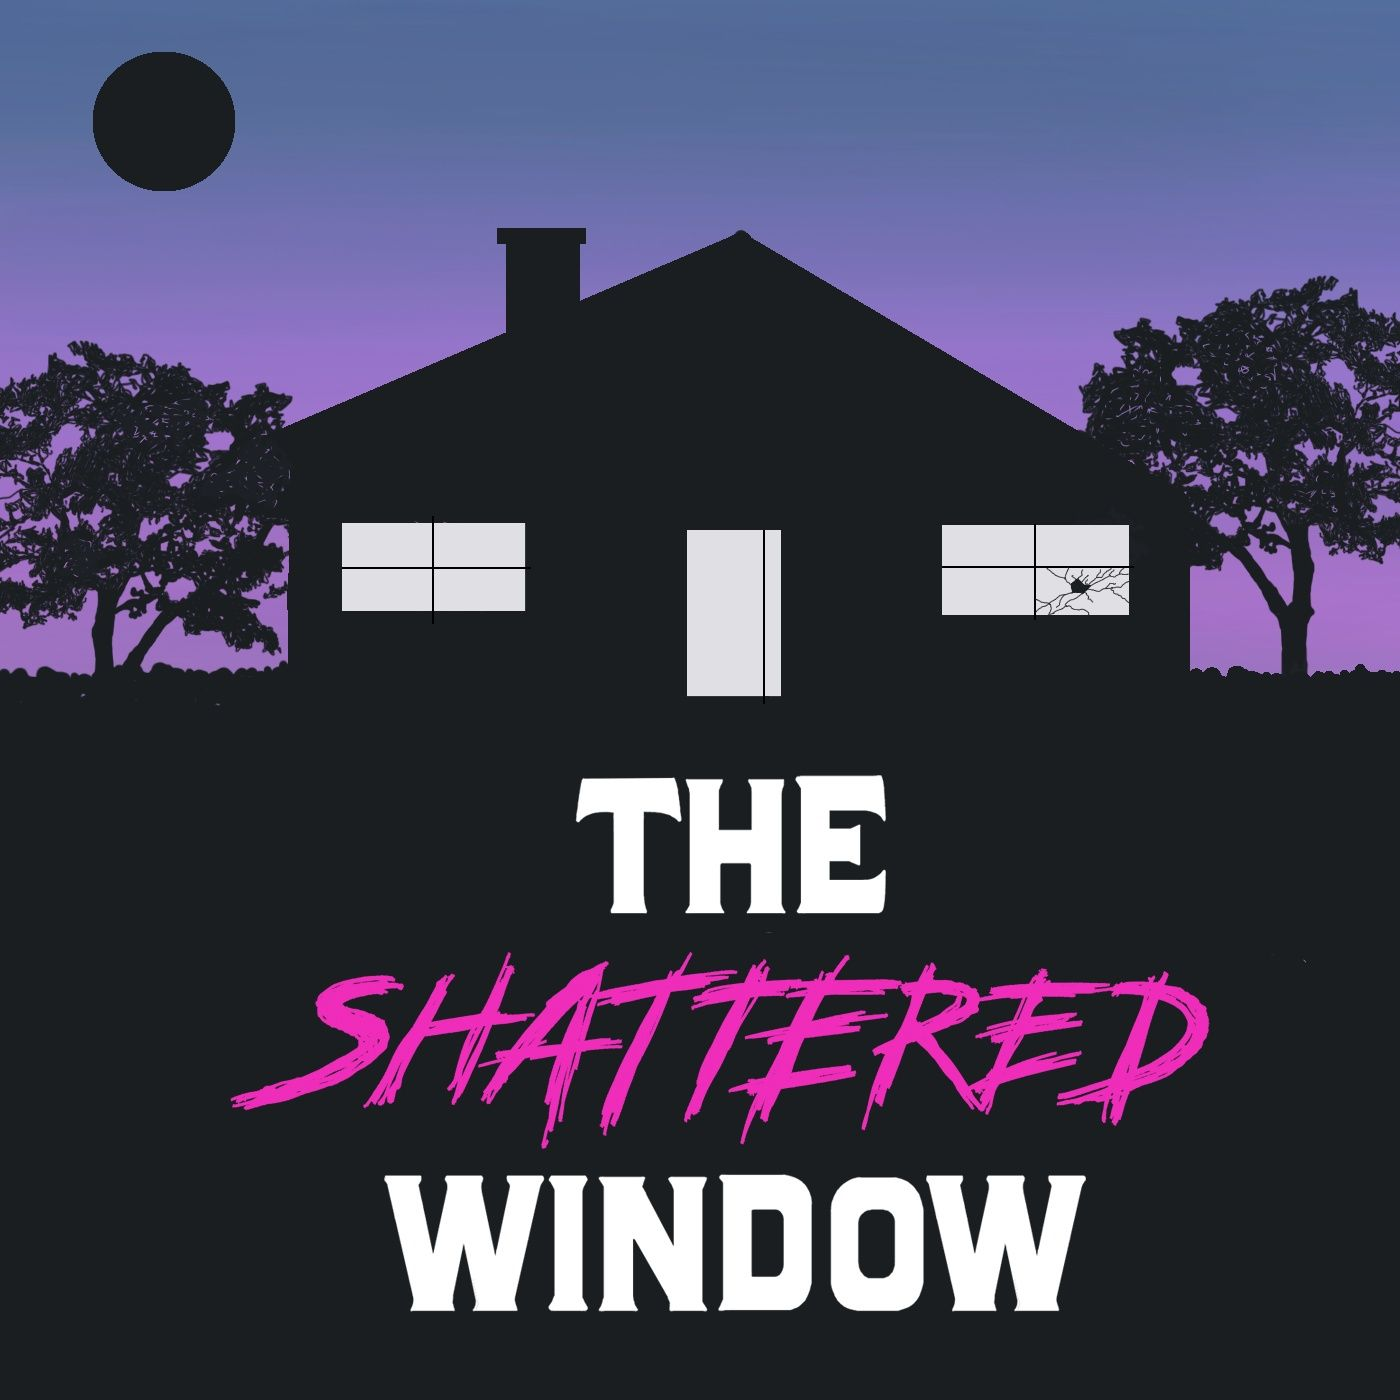 Introducing: The Shattered Window